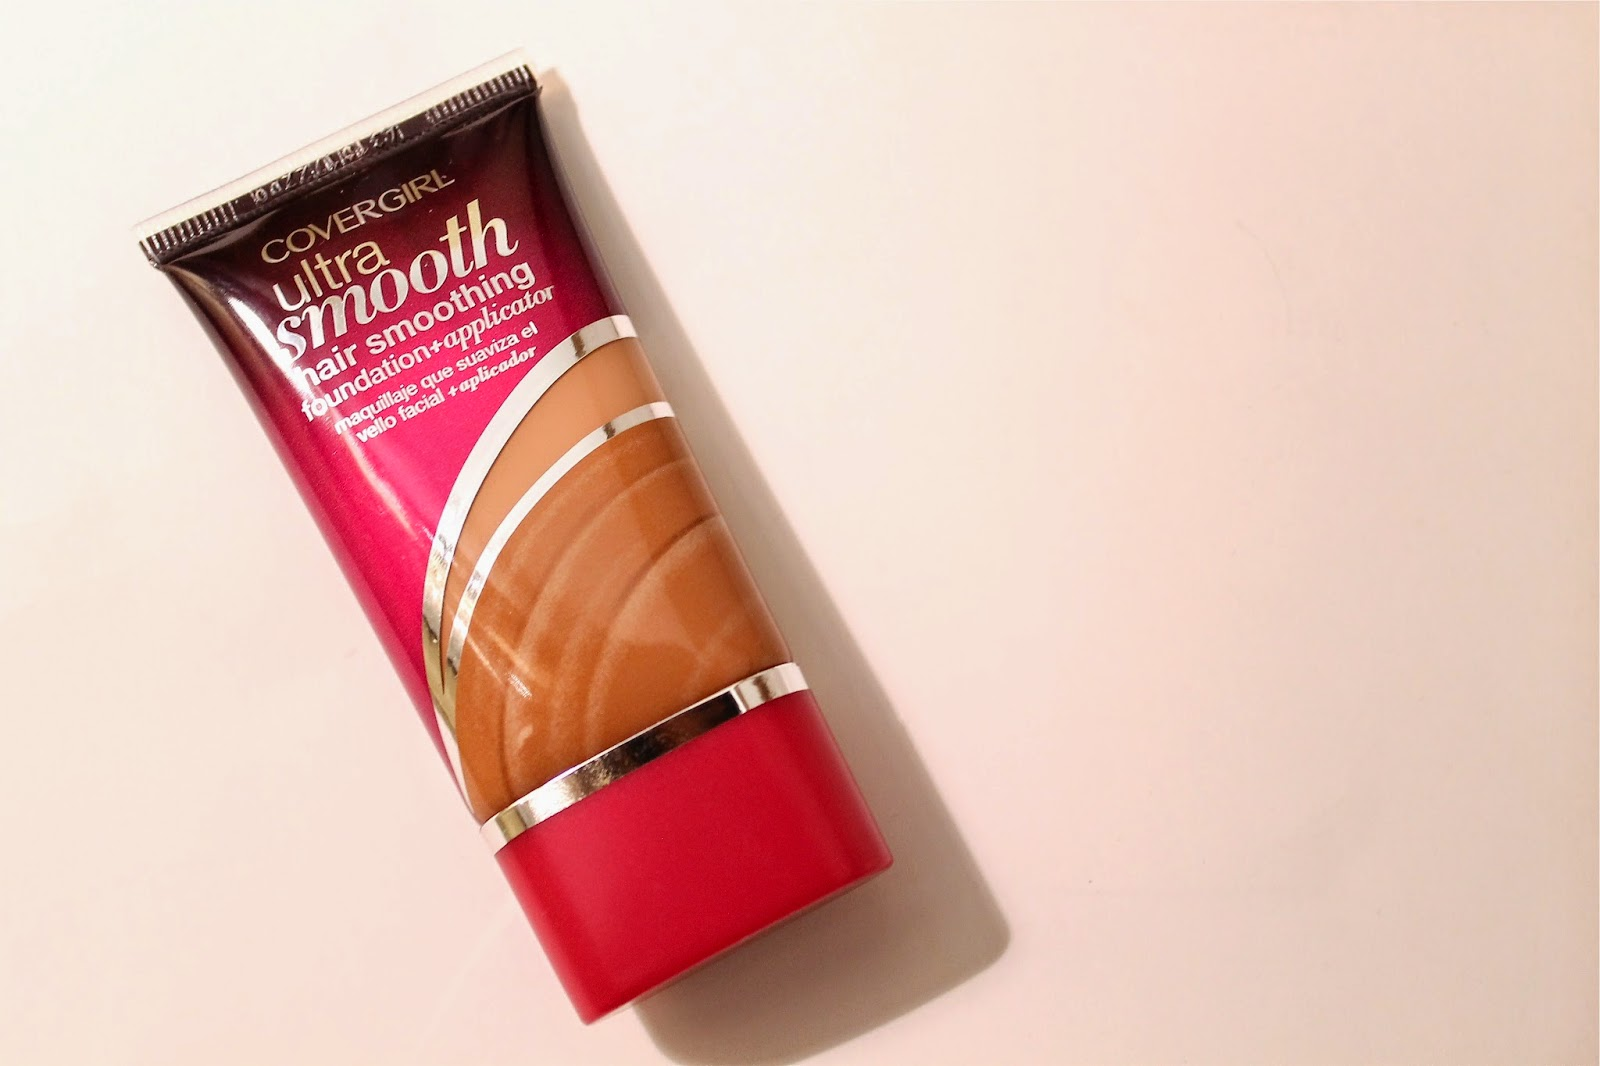 Covergirl UltraSmooth hair smoothing foundation